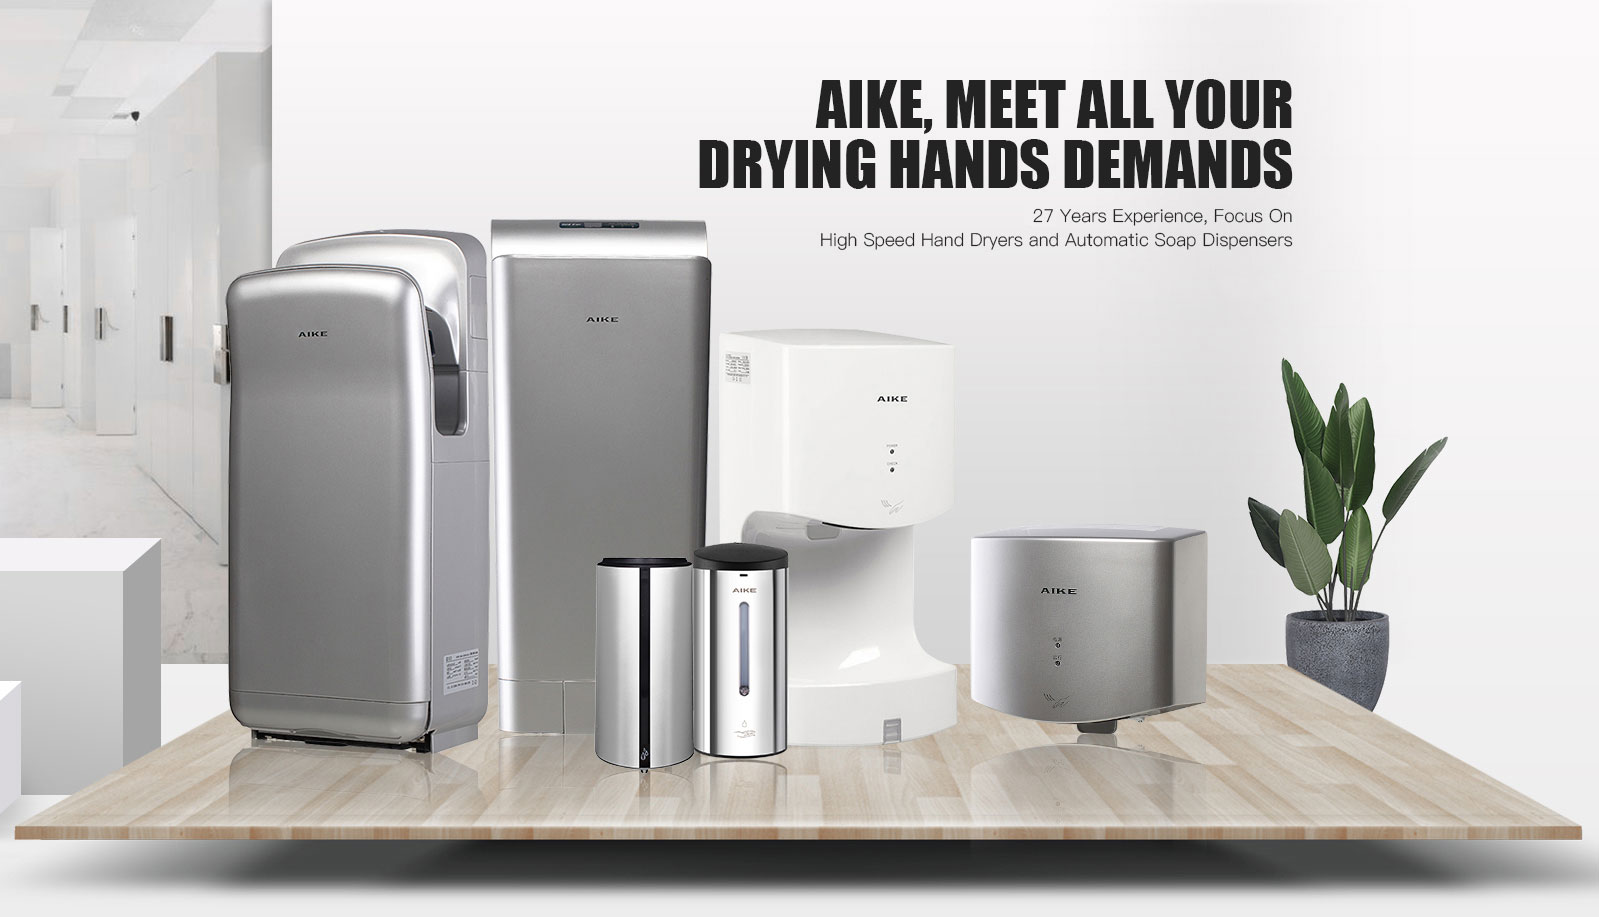 Hand Dryer Purchasing Guide - Pay attention to these 5 points